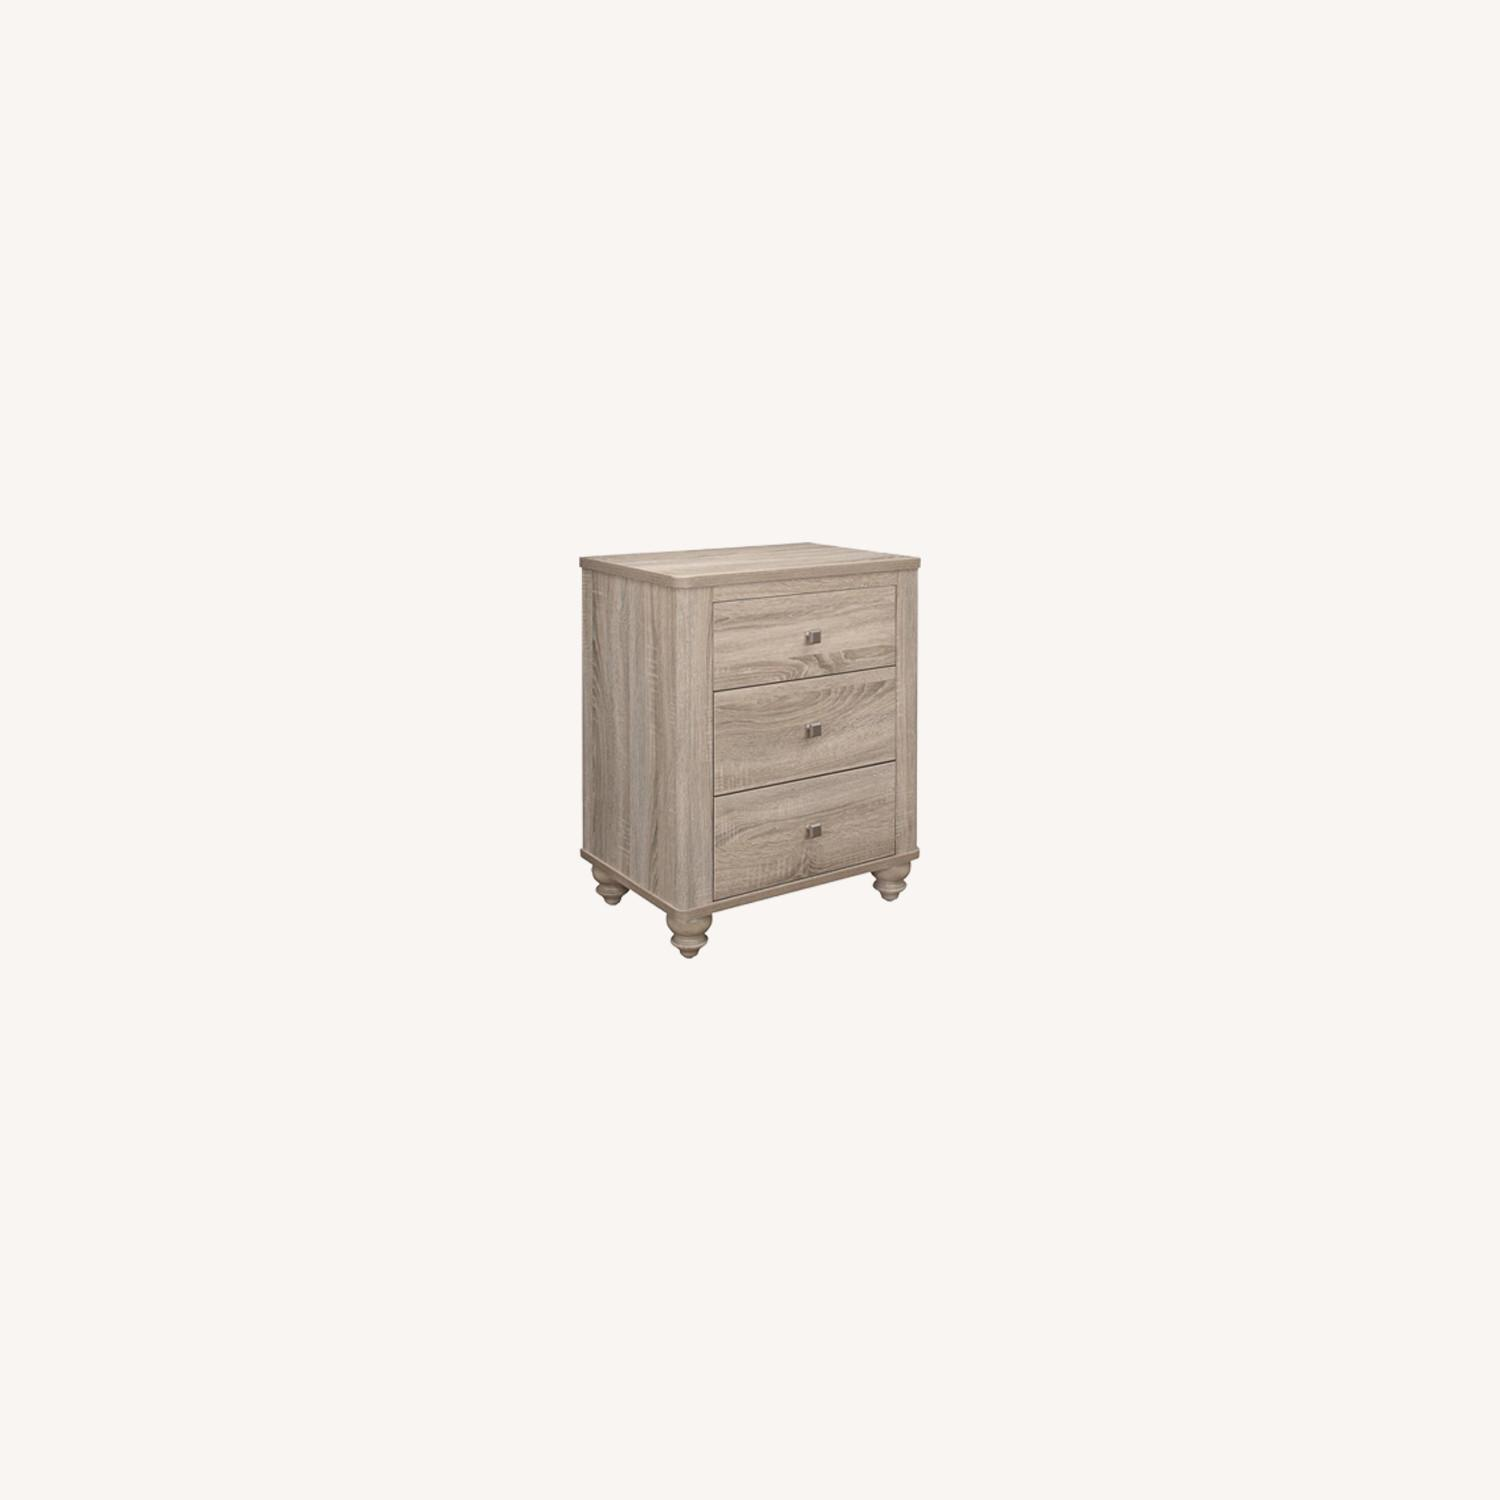 3-Drawer Nightstand In Natural Oak Finish - image-6